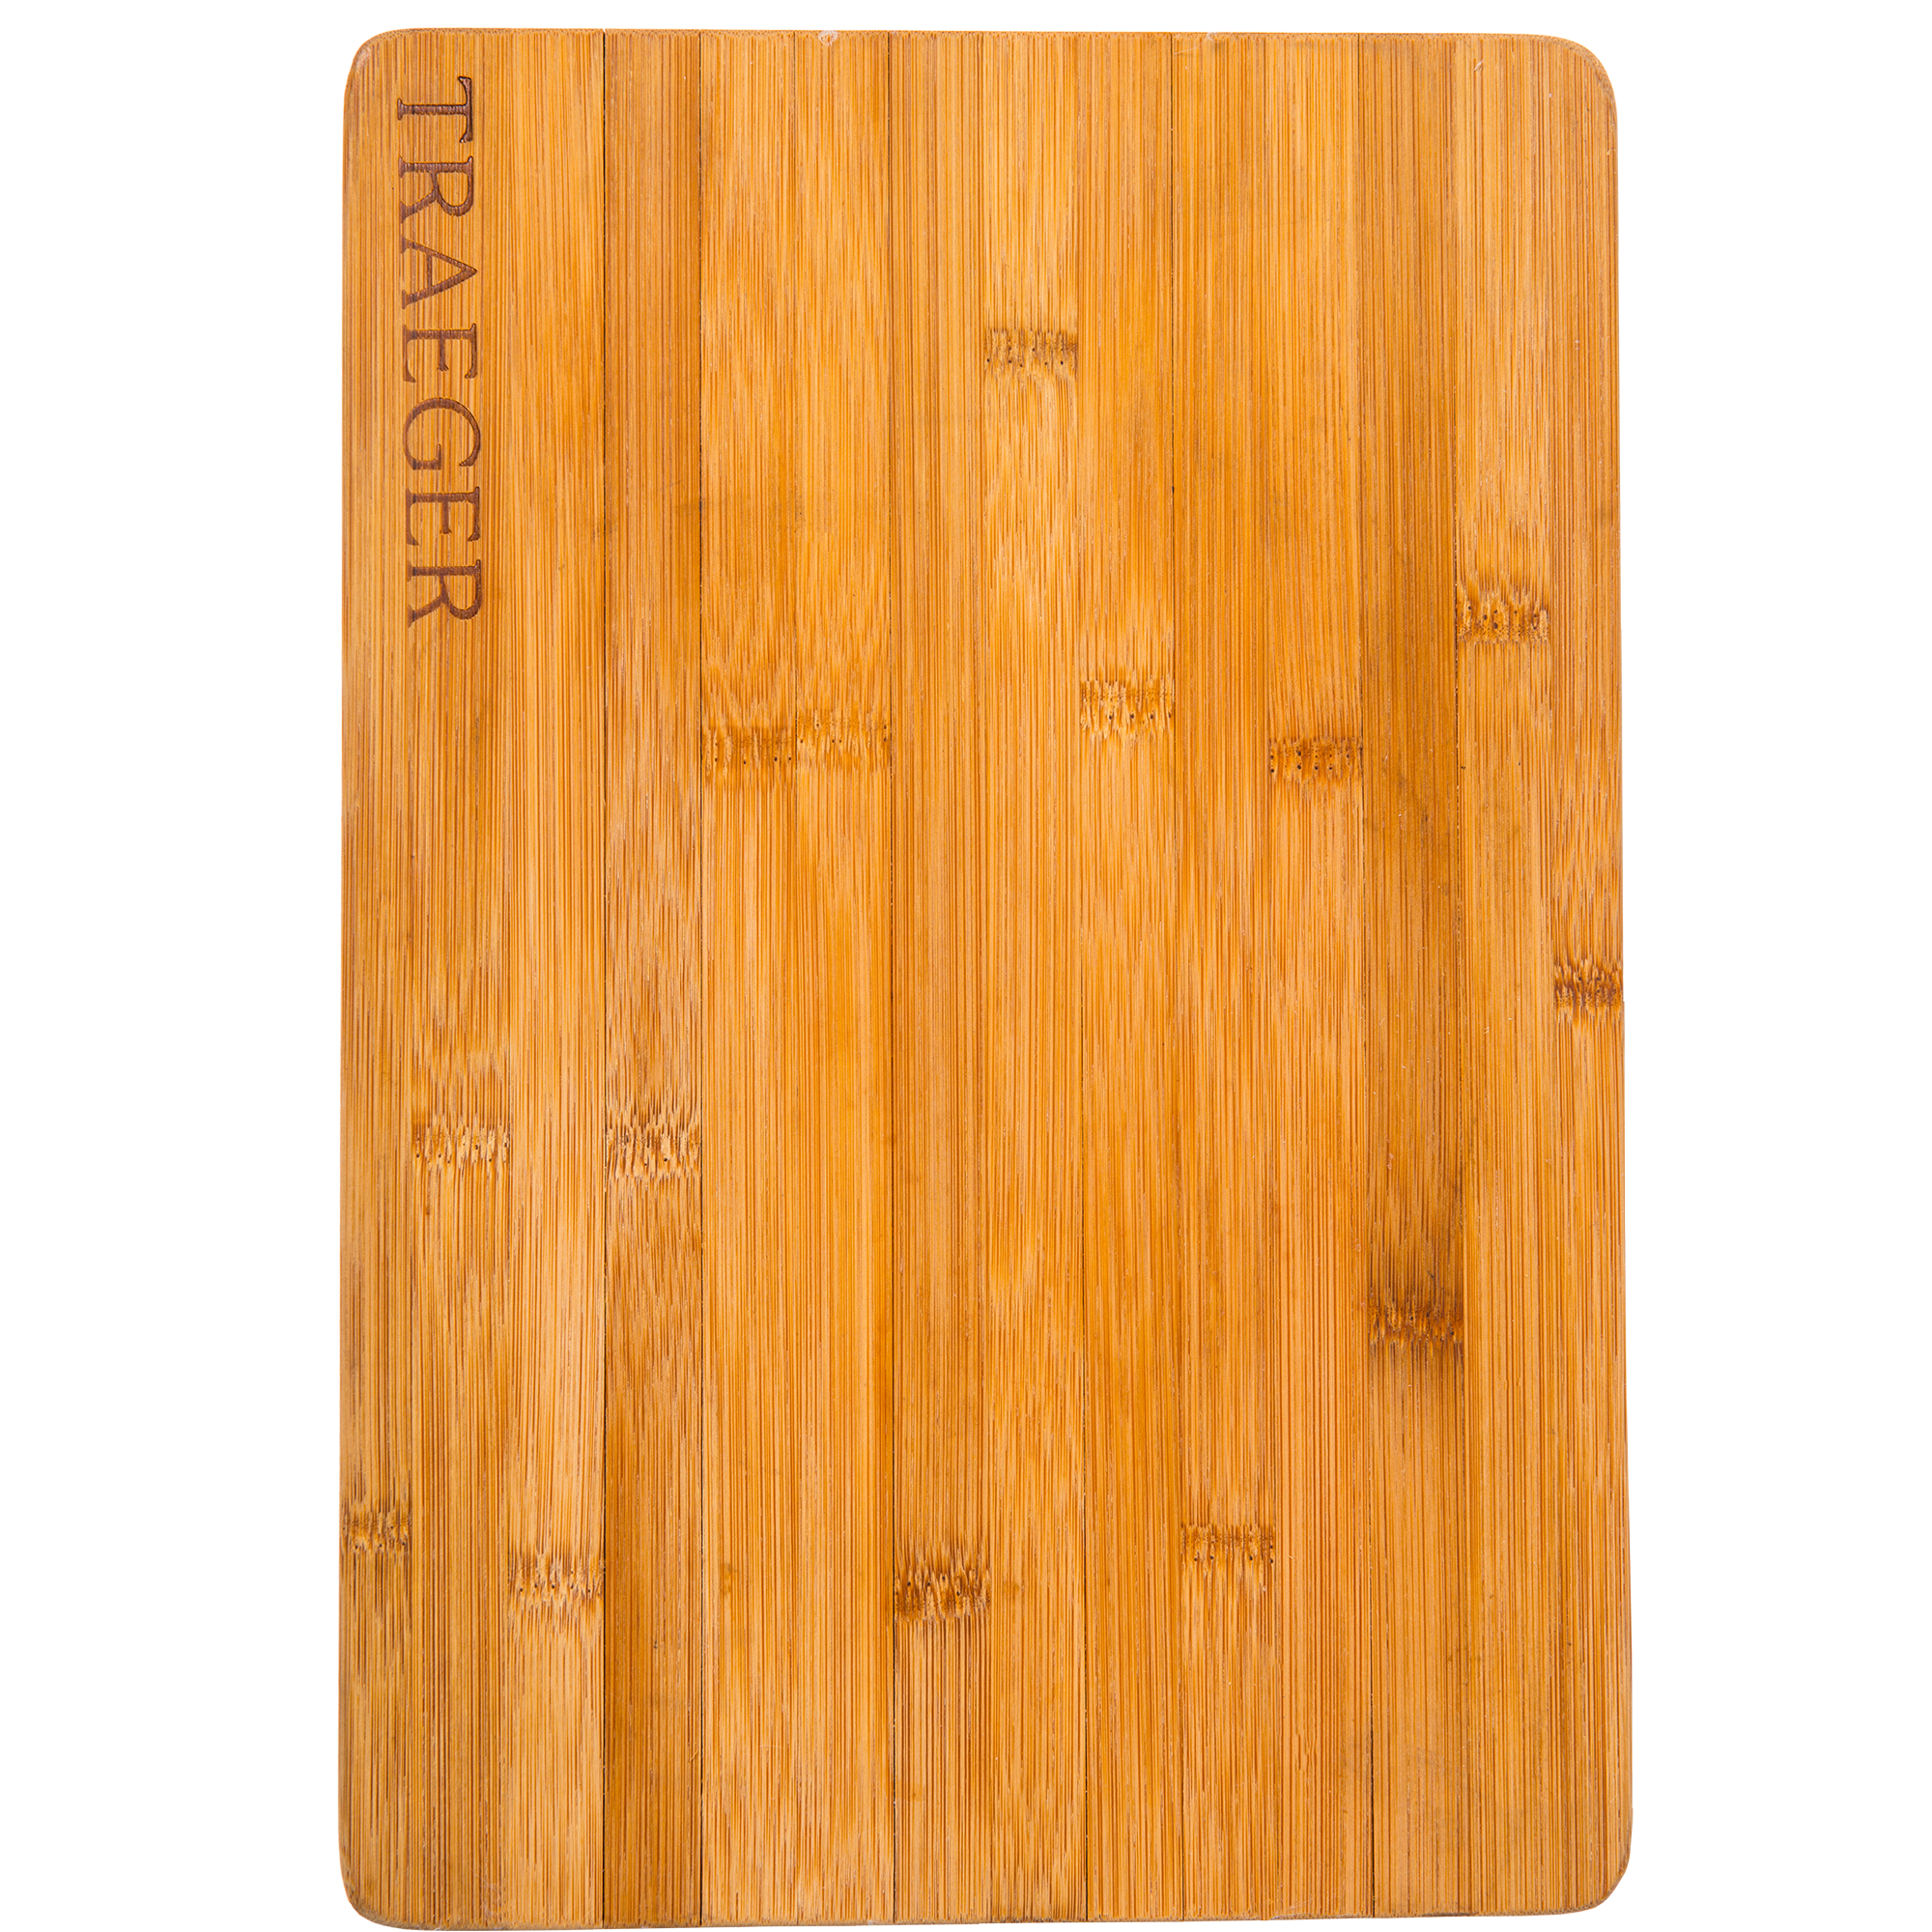 Wood board png. Magnetic bamboo cutting traeger